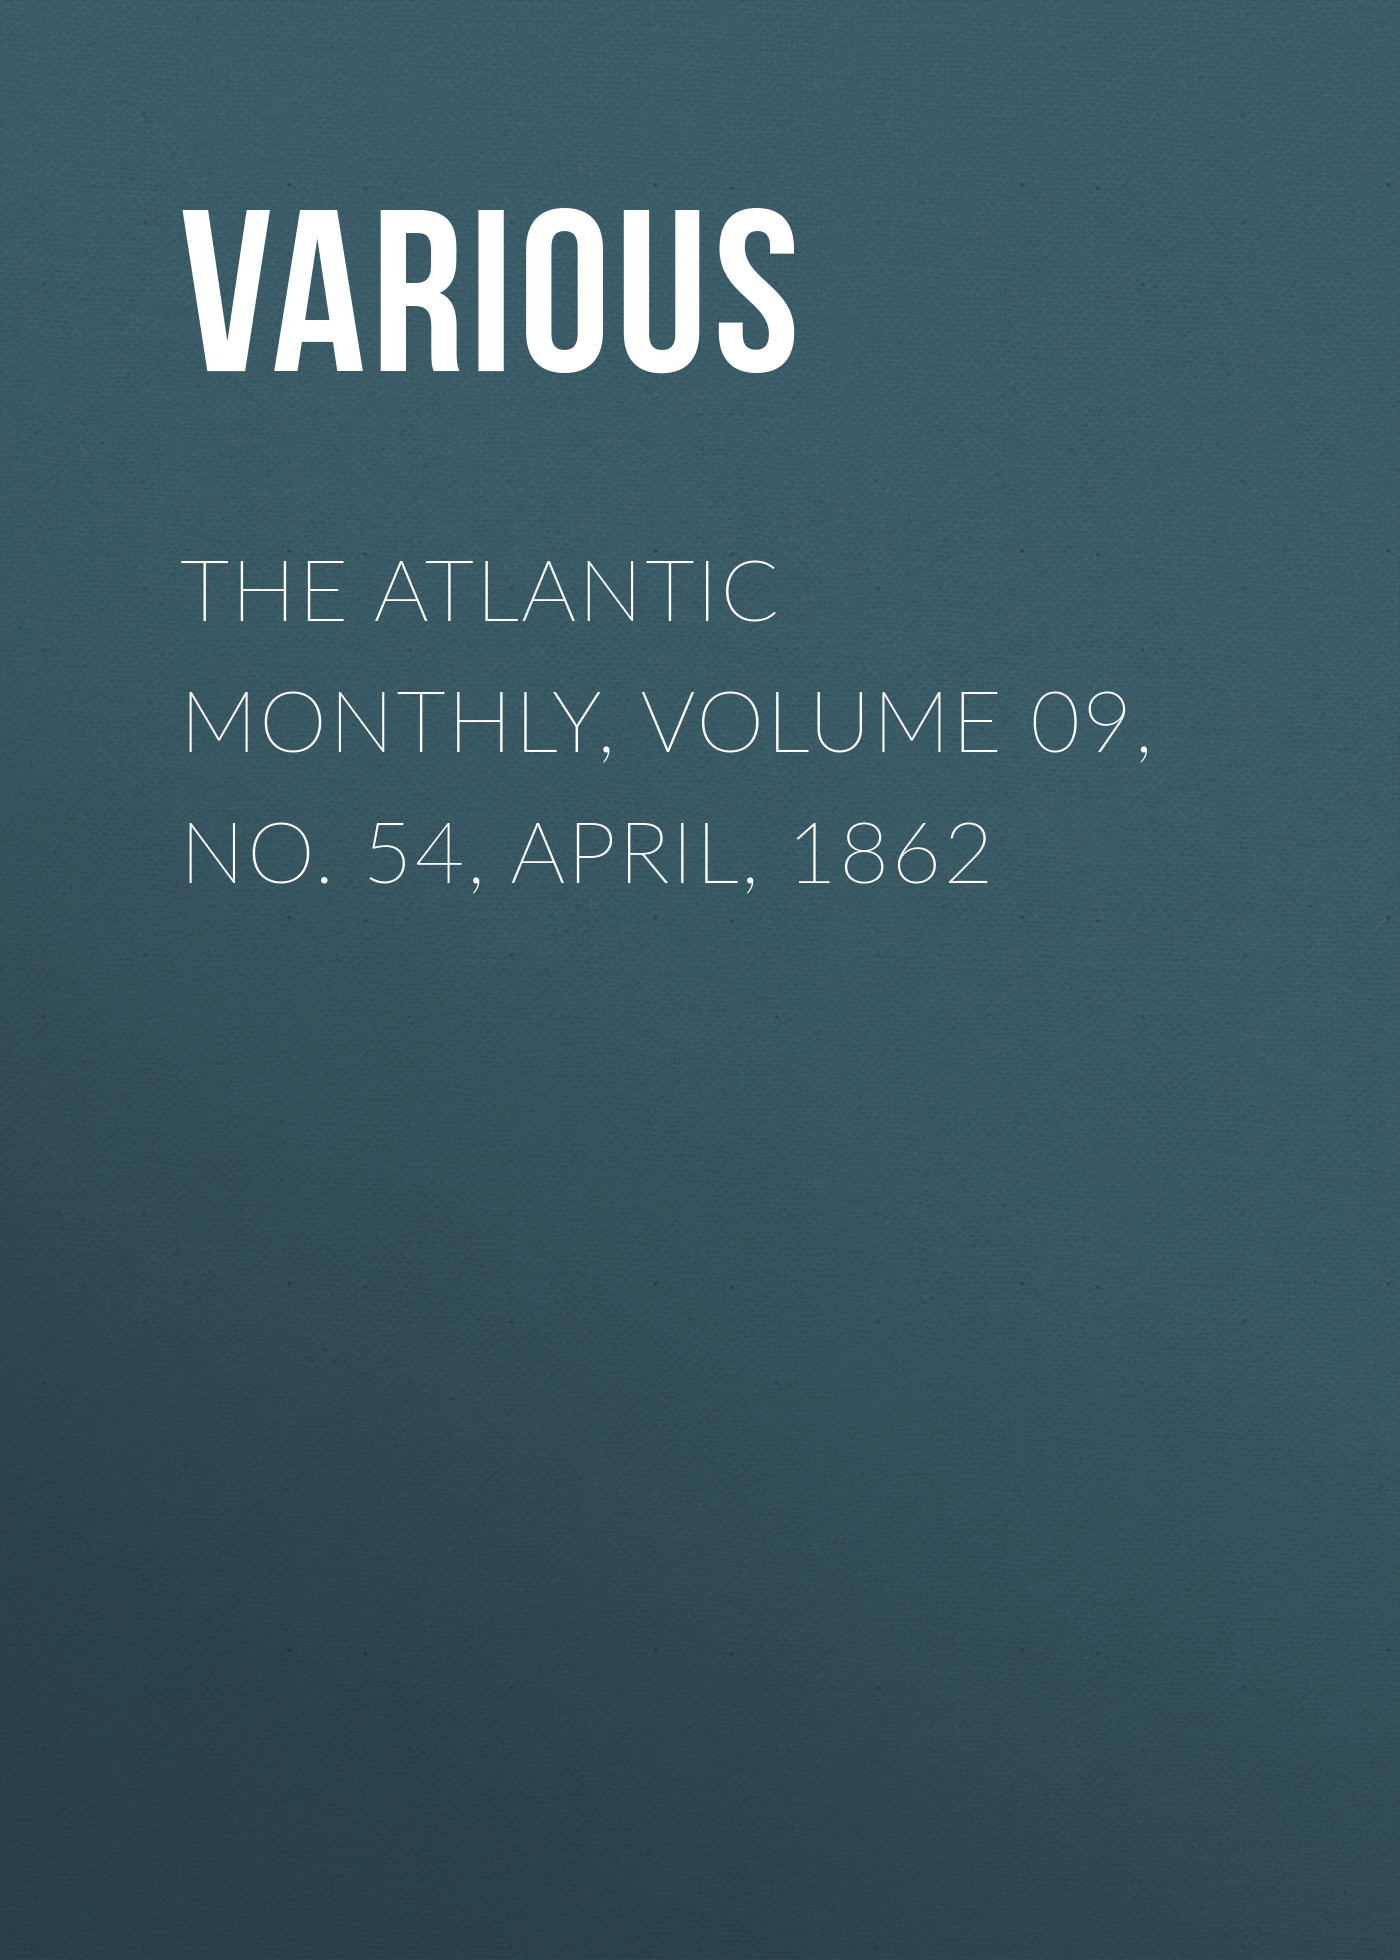 Various The Atlantic Monthly, Volume 09, No. 54, April, 1862 various the atlantic monthly volume 10 no 62 december 1862